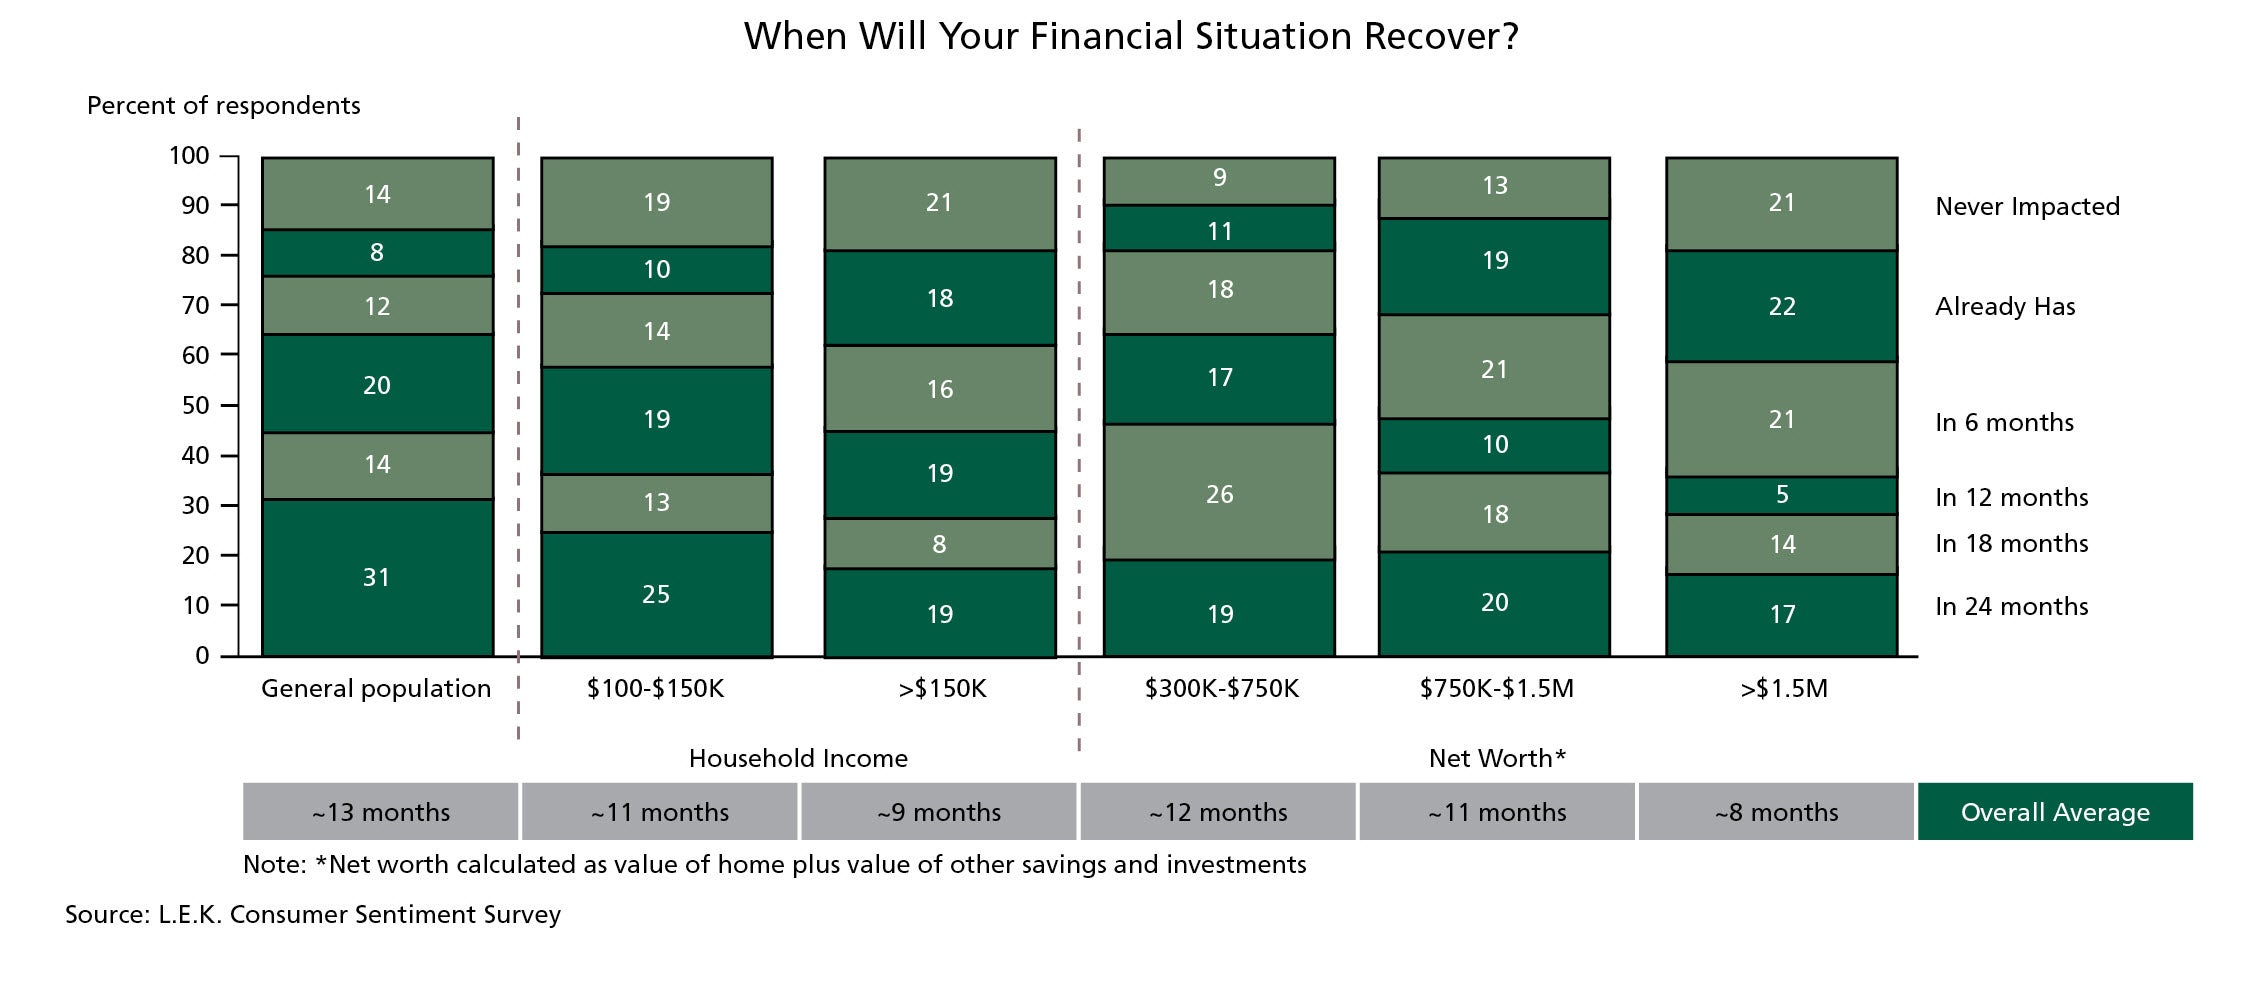 When Will Your Financial Situation Recover?